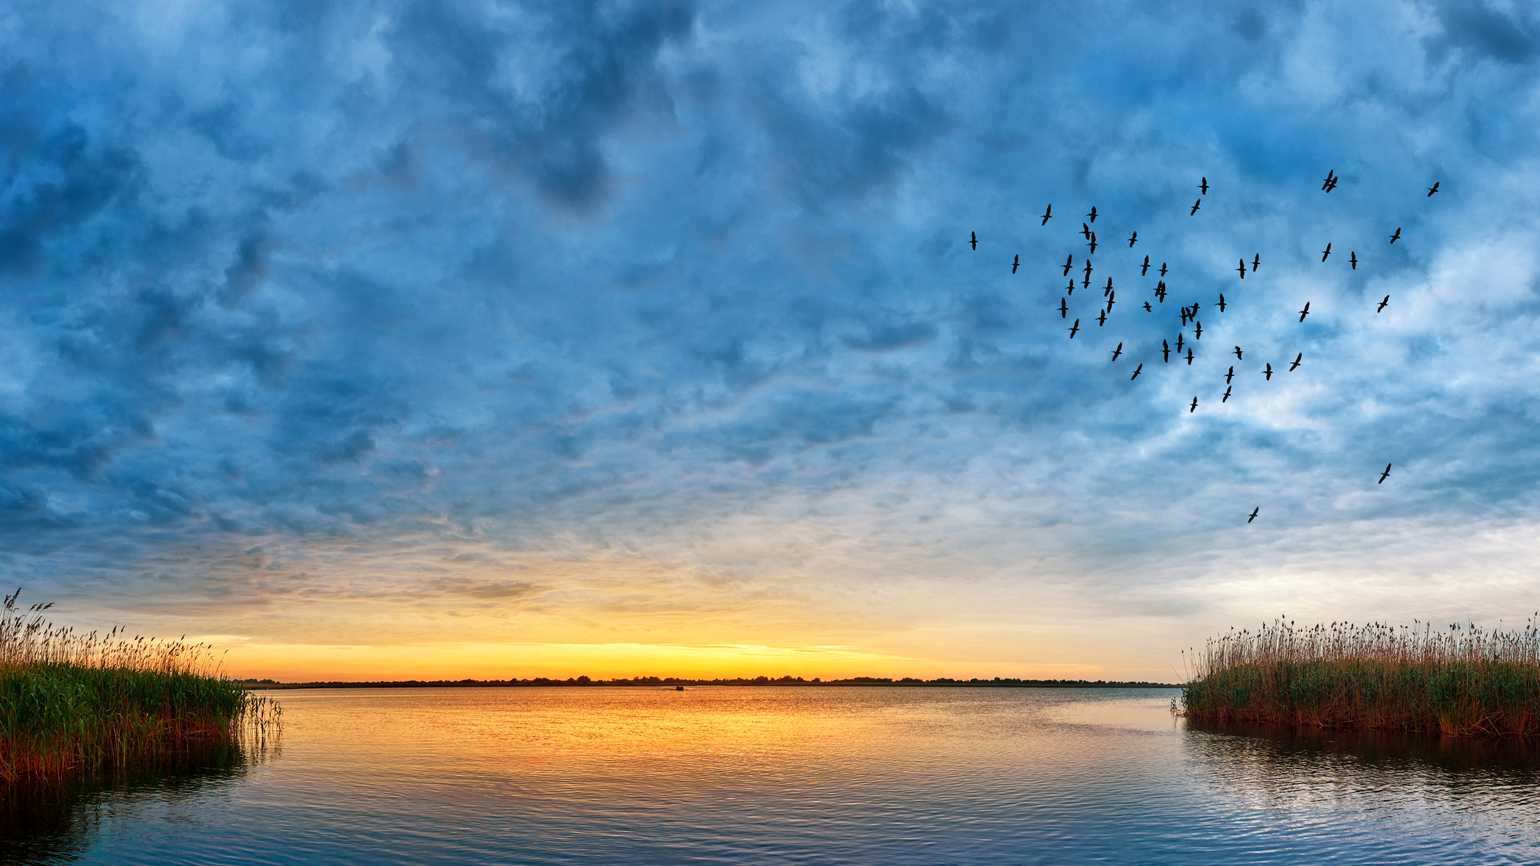 Peaceful sunset landscape over a pond as a flock of birds fly.